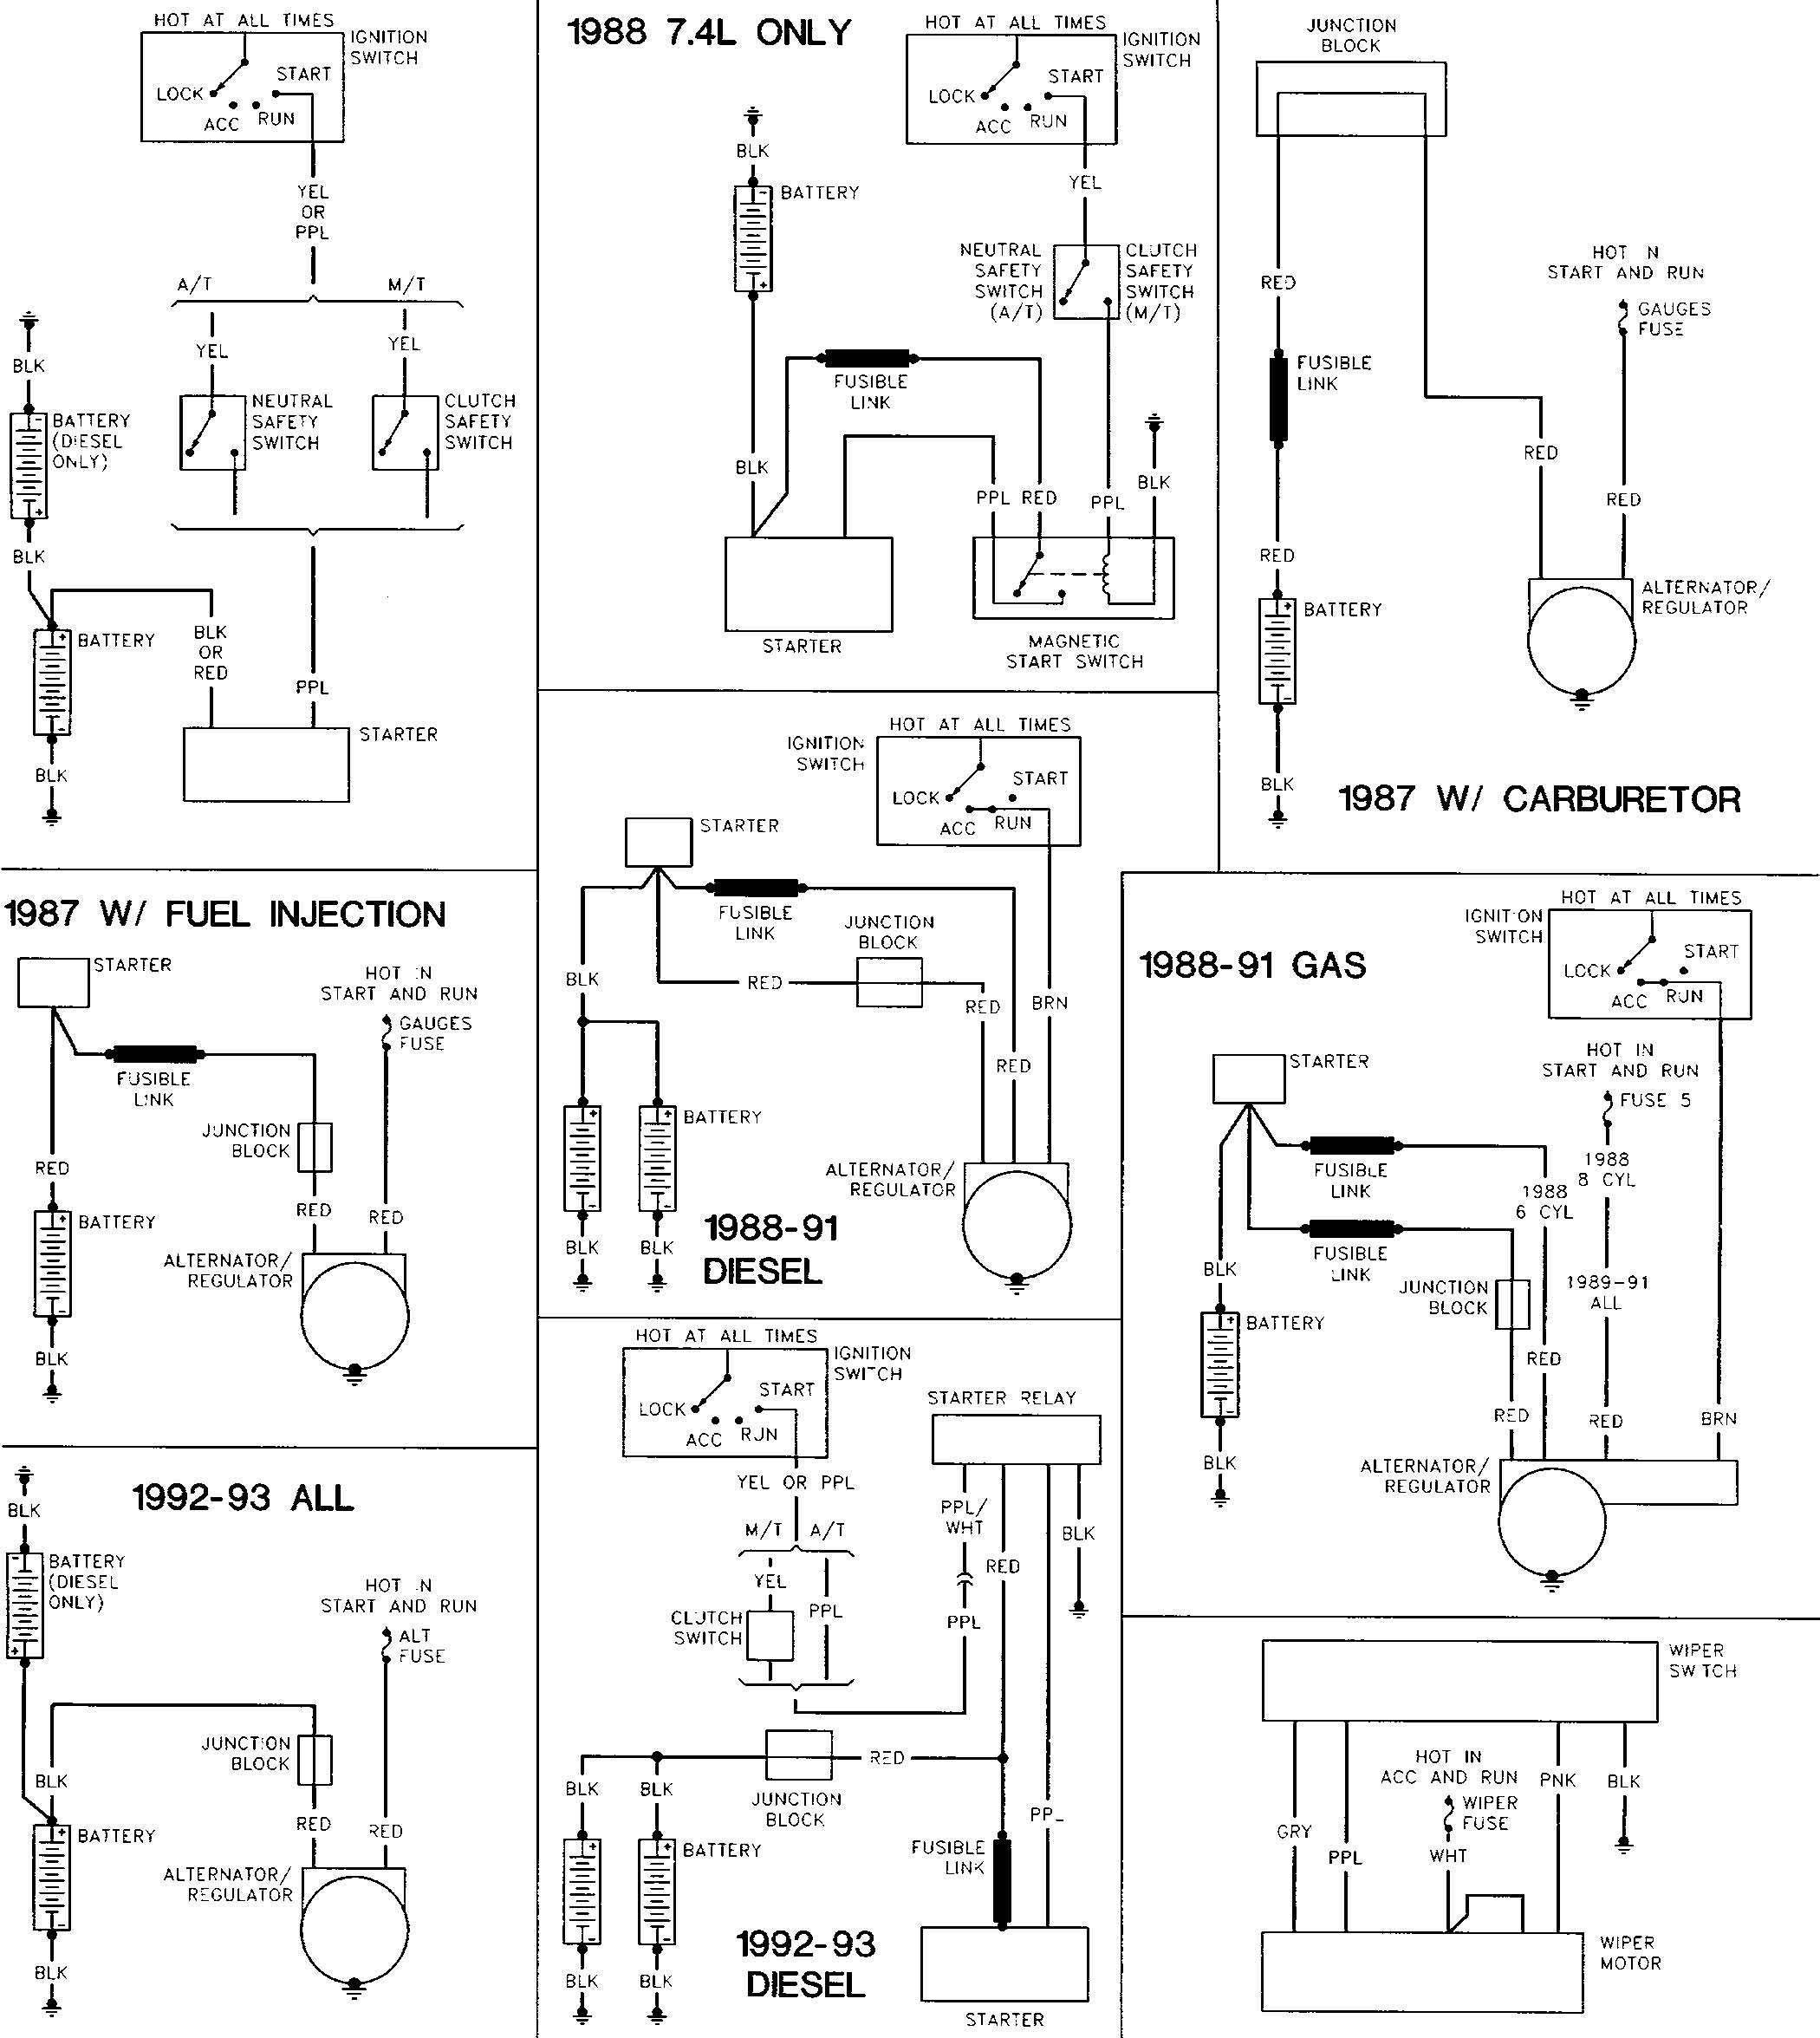 Holiday Rambler Wiring Diagram Best Of In 2020 Holiday Rambler Electrical Diagram Rv